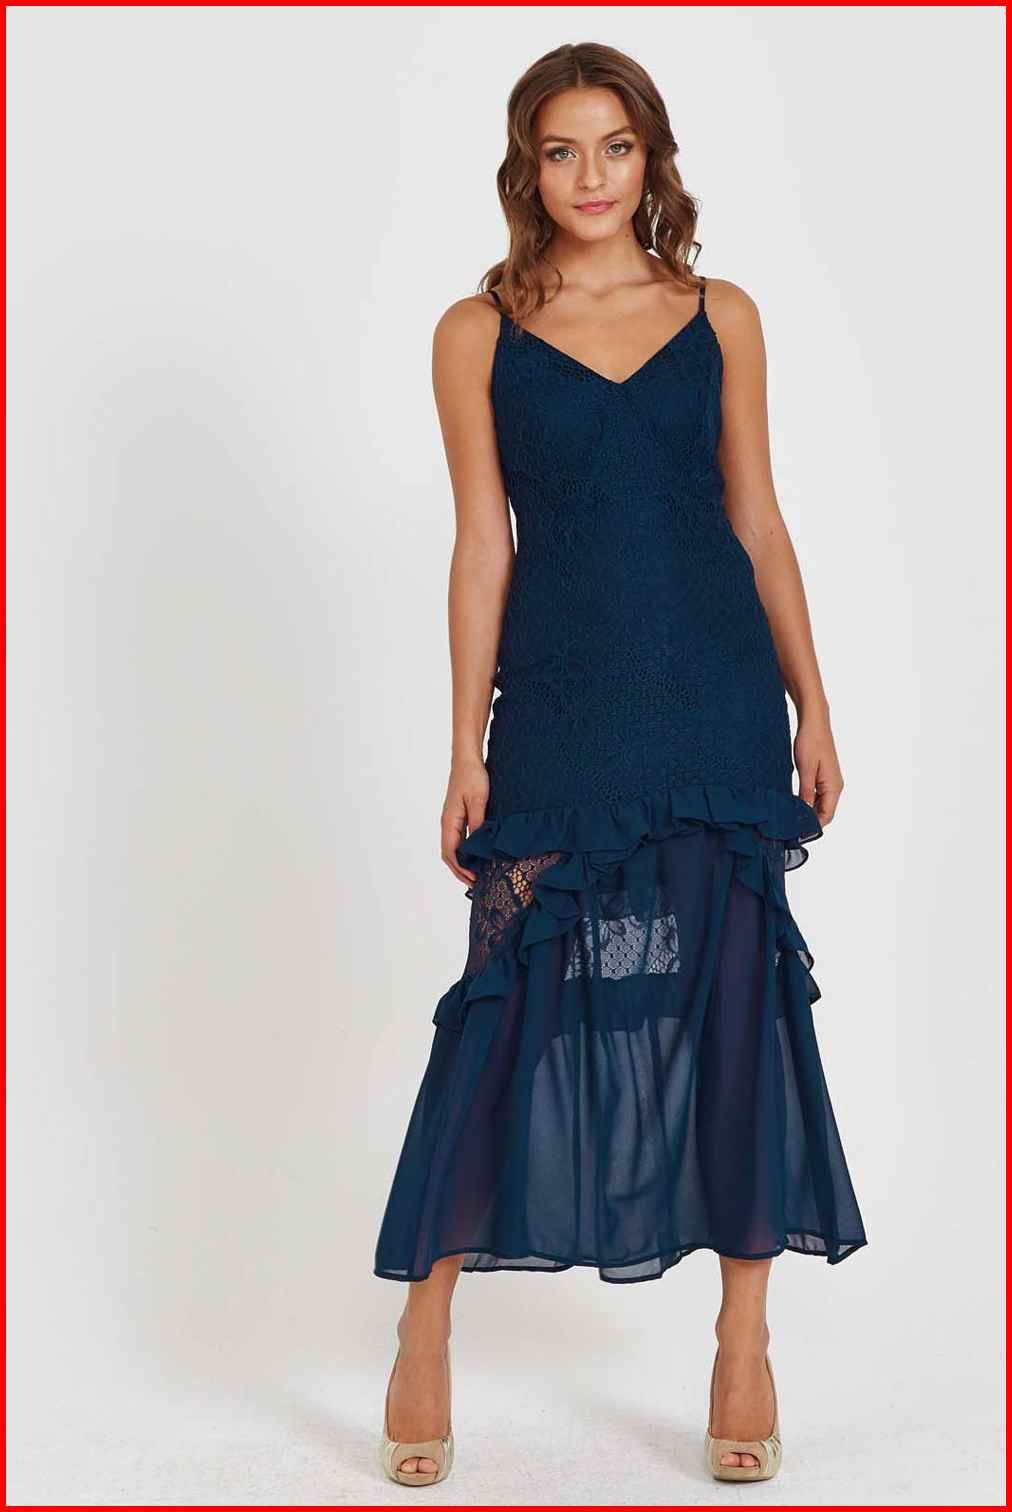 35 winter wedding guest dresses our top picks hitched